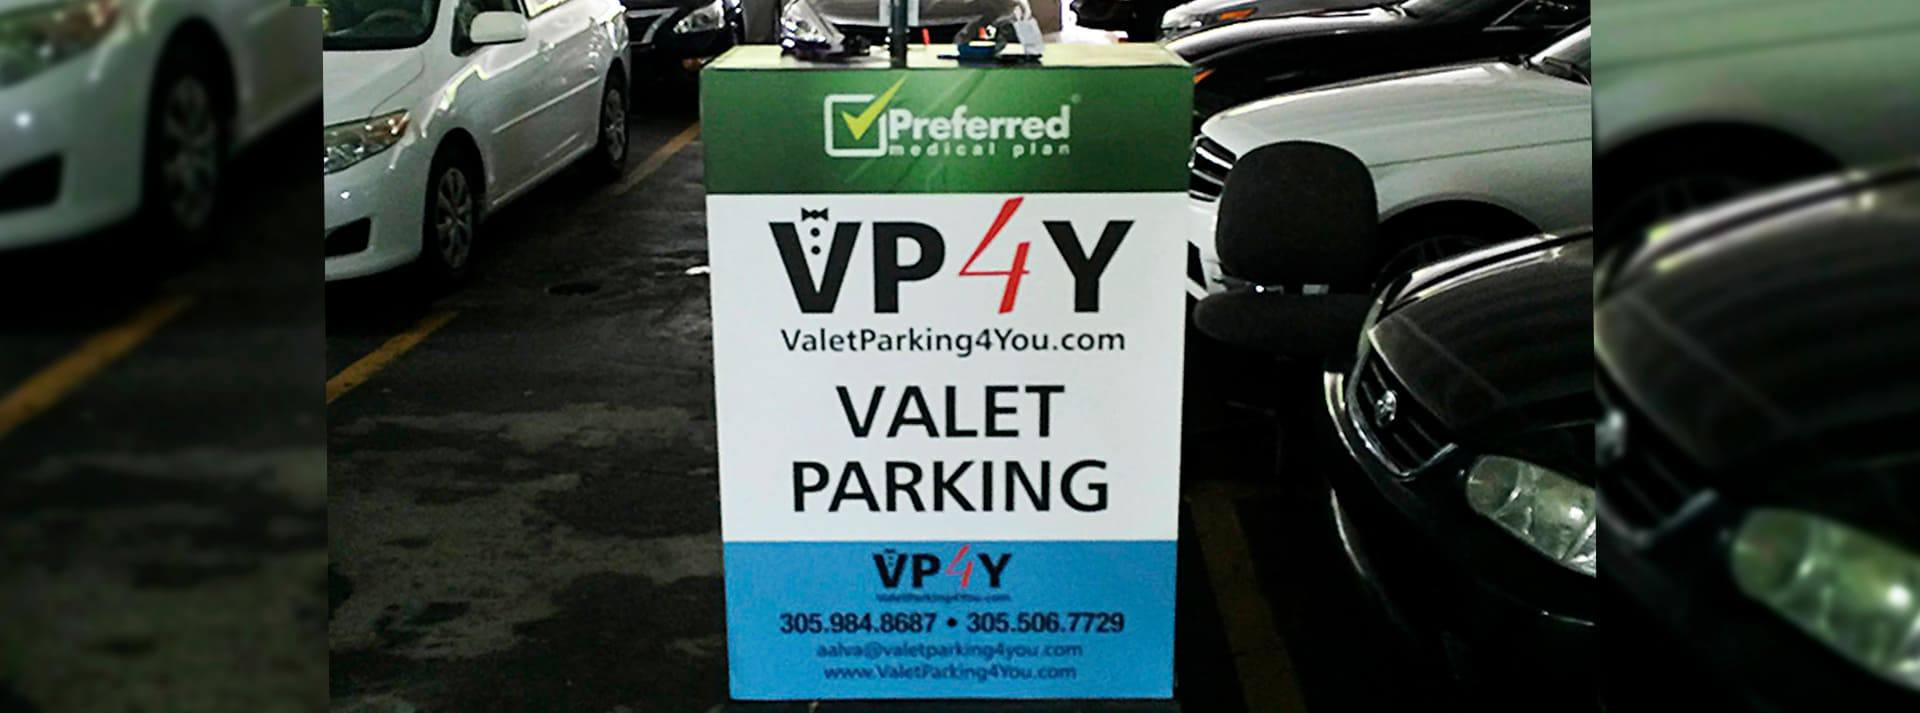 ValetParking4you